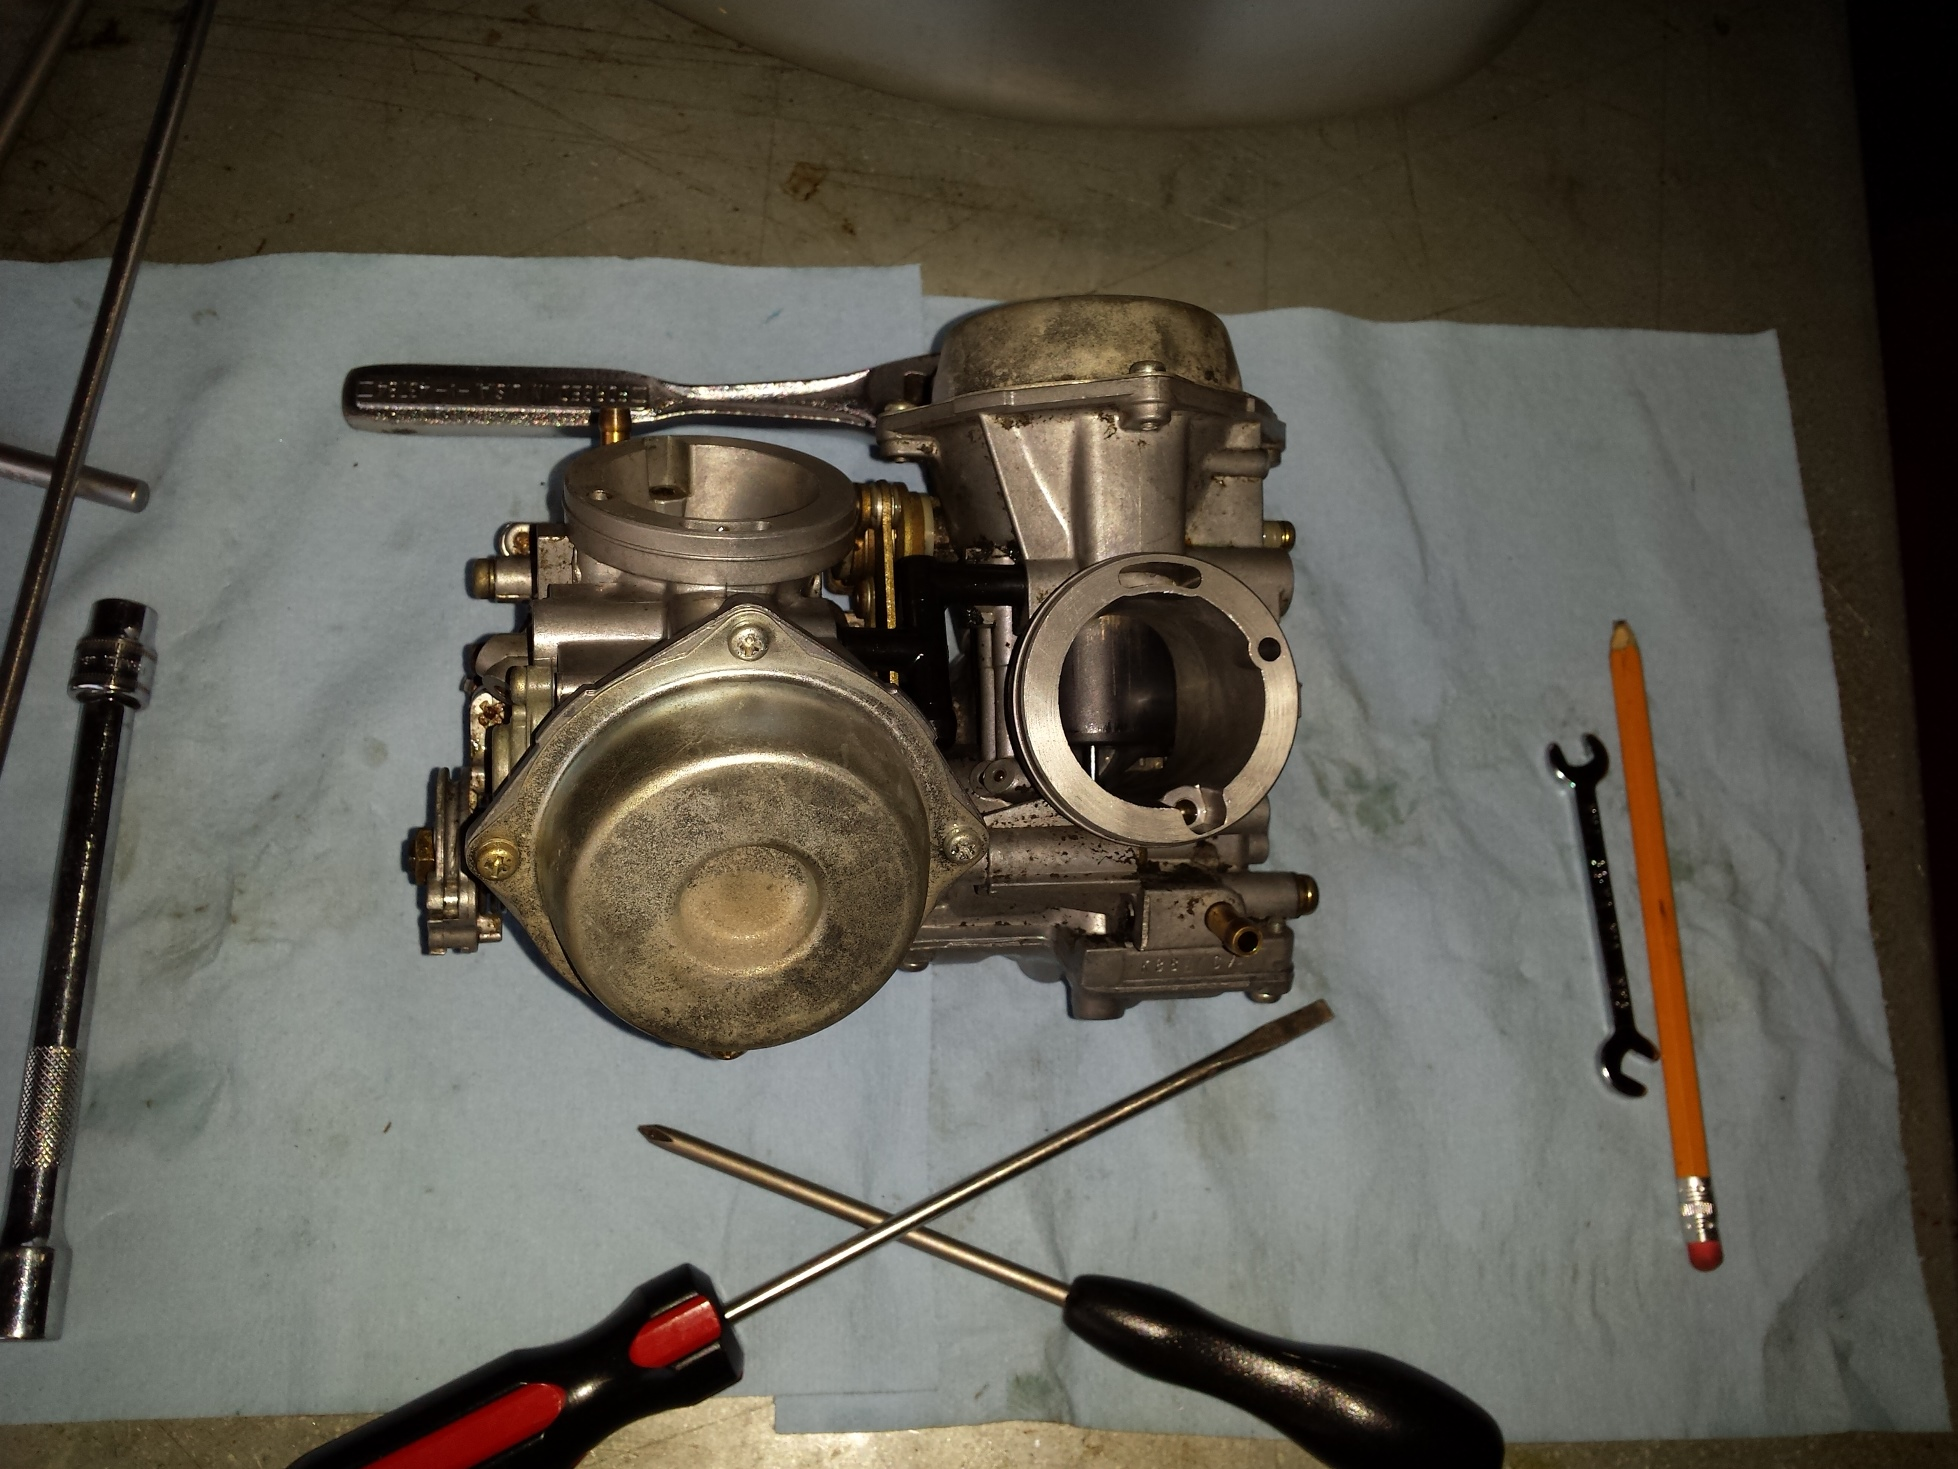 How To Clean Carburetor >> '97 Honda Shadow 1100 Carb Cleaning & Jetting ~ Part 2